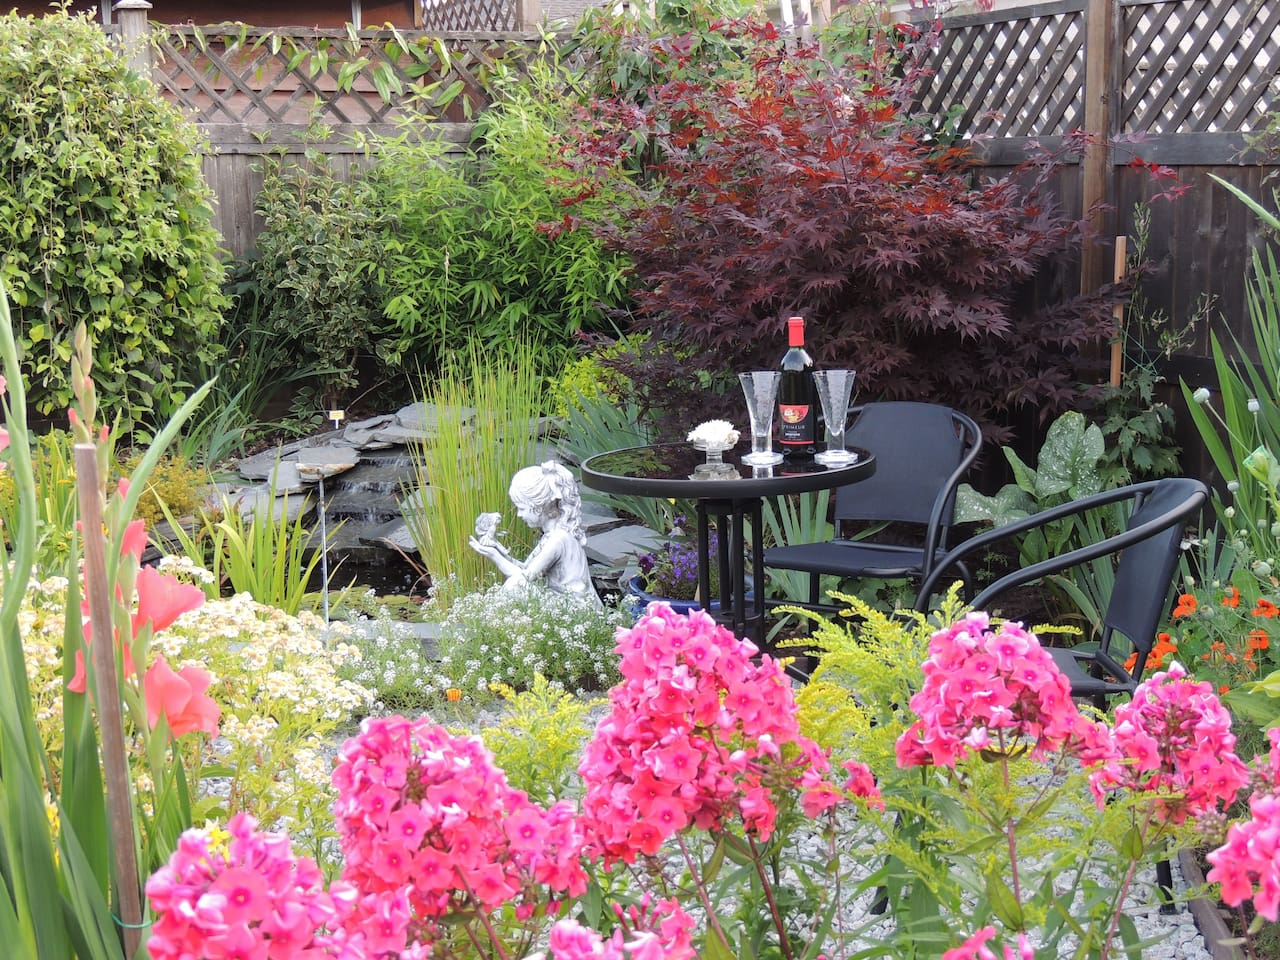 Gardeners Culinary Delight B & B - Bungalows for Rent in Qualicum ...